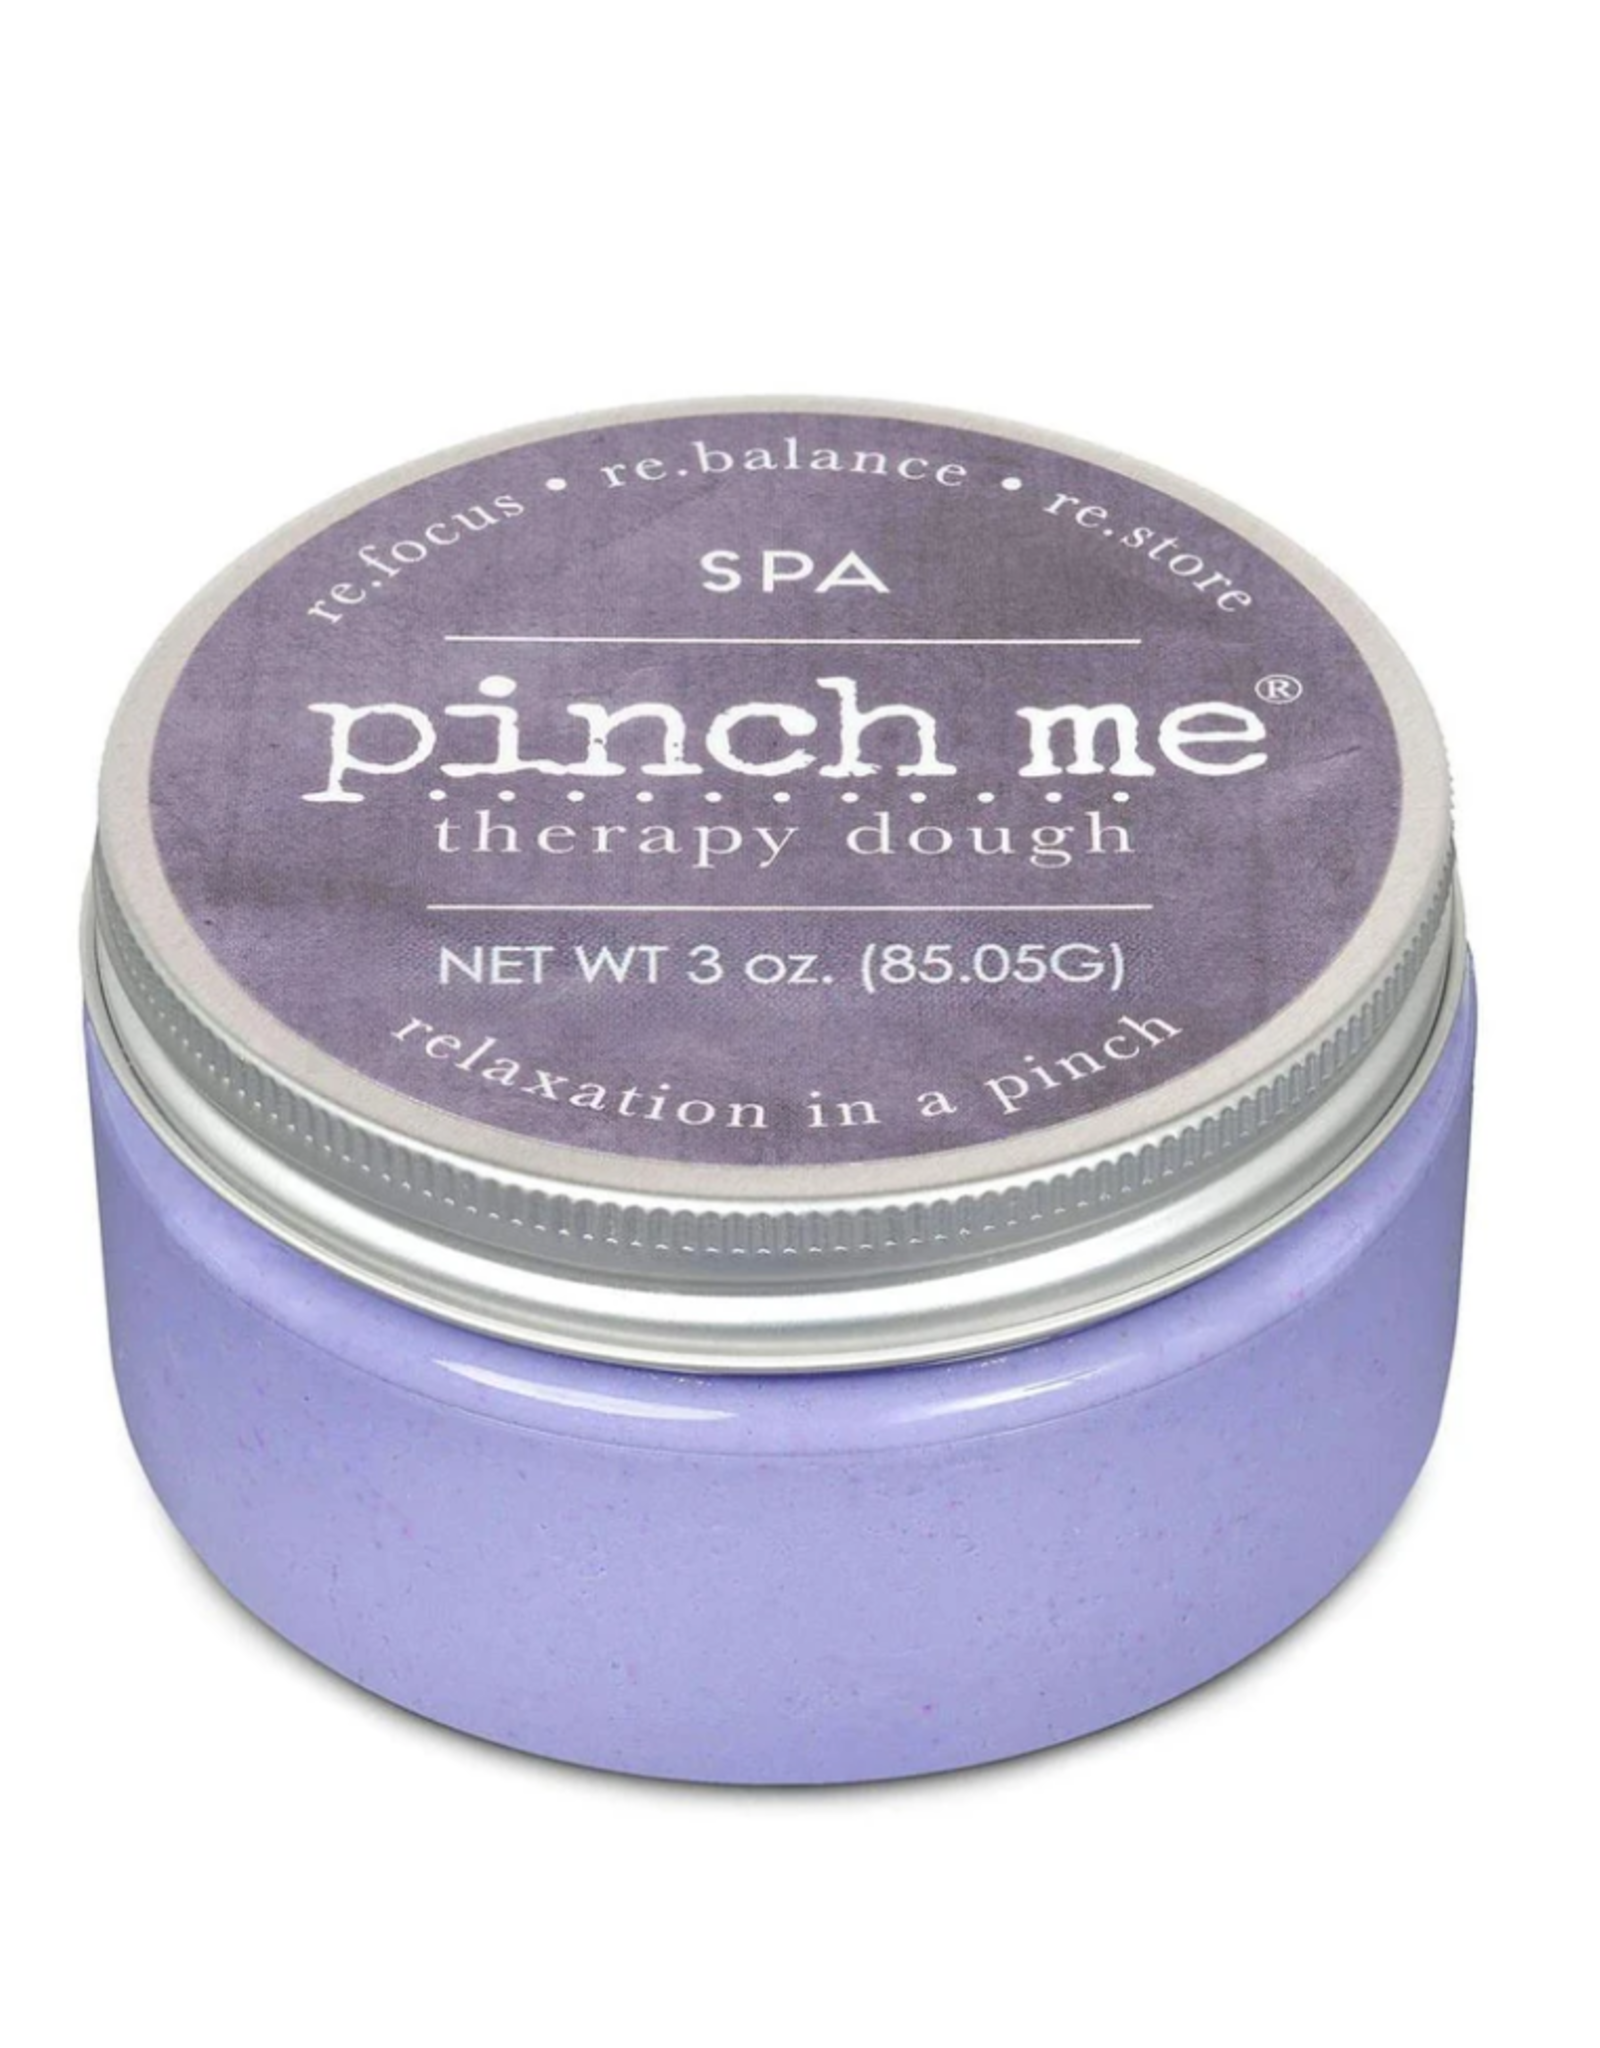 Pinch Me Therapy Dough 3oz - Spa